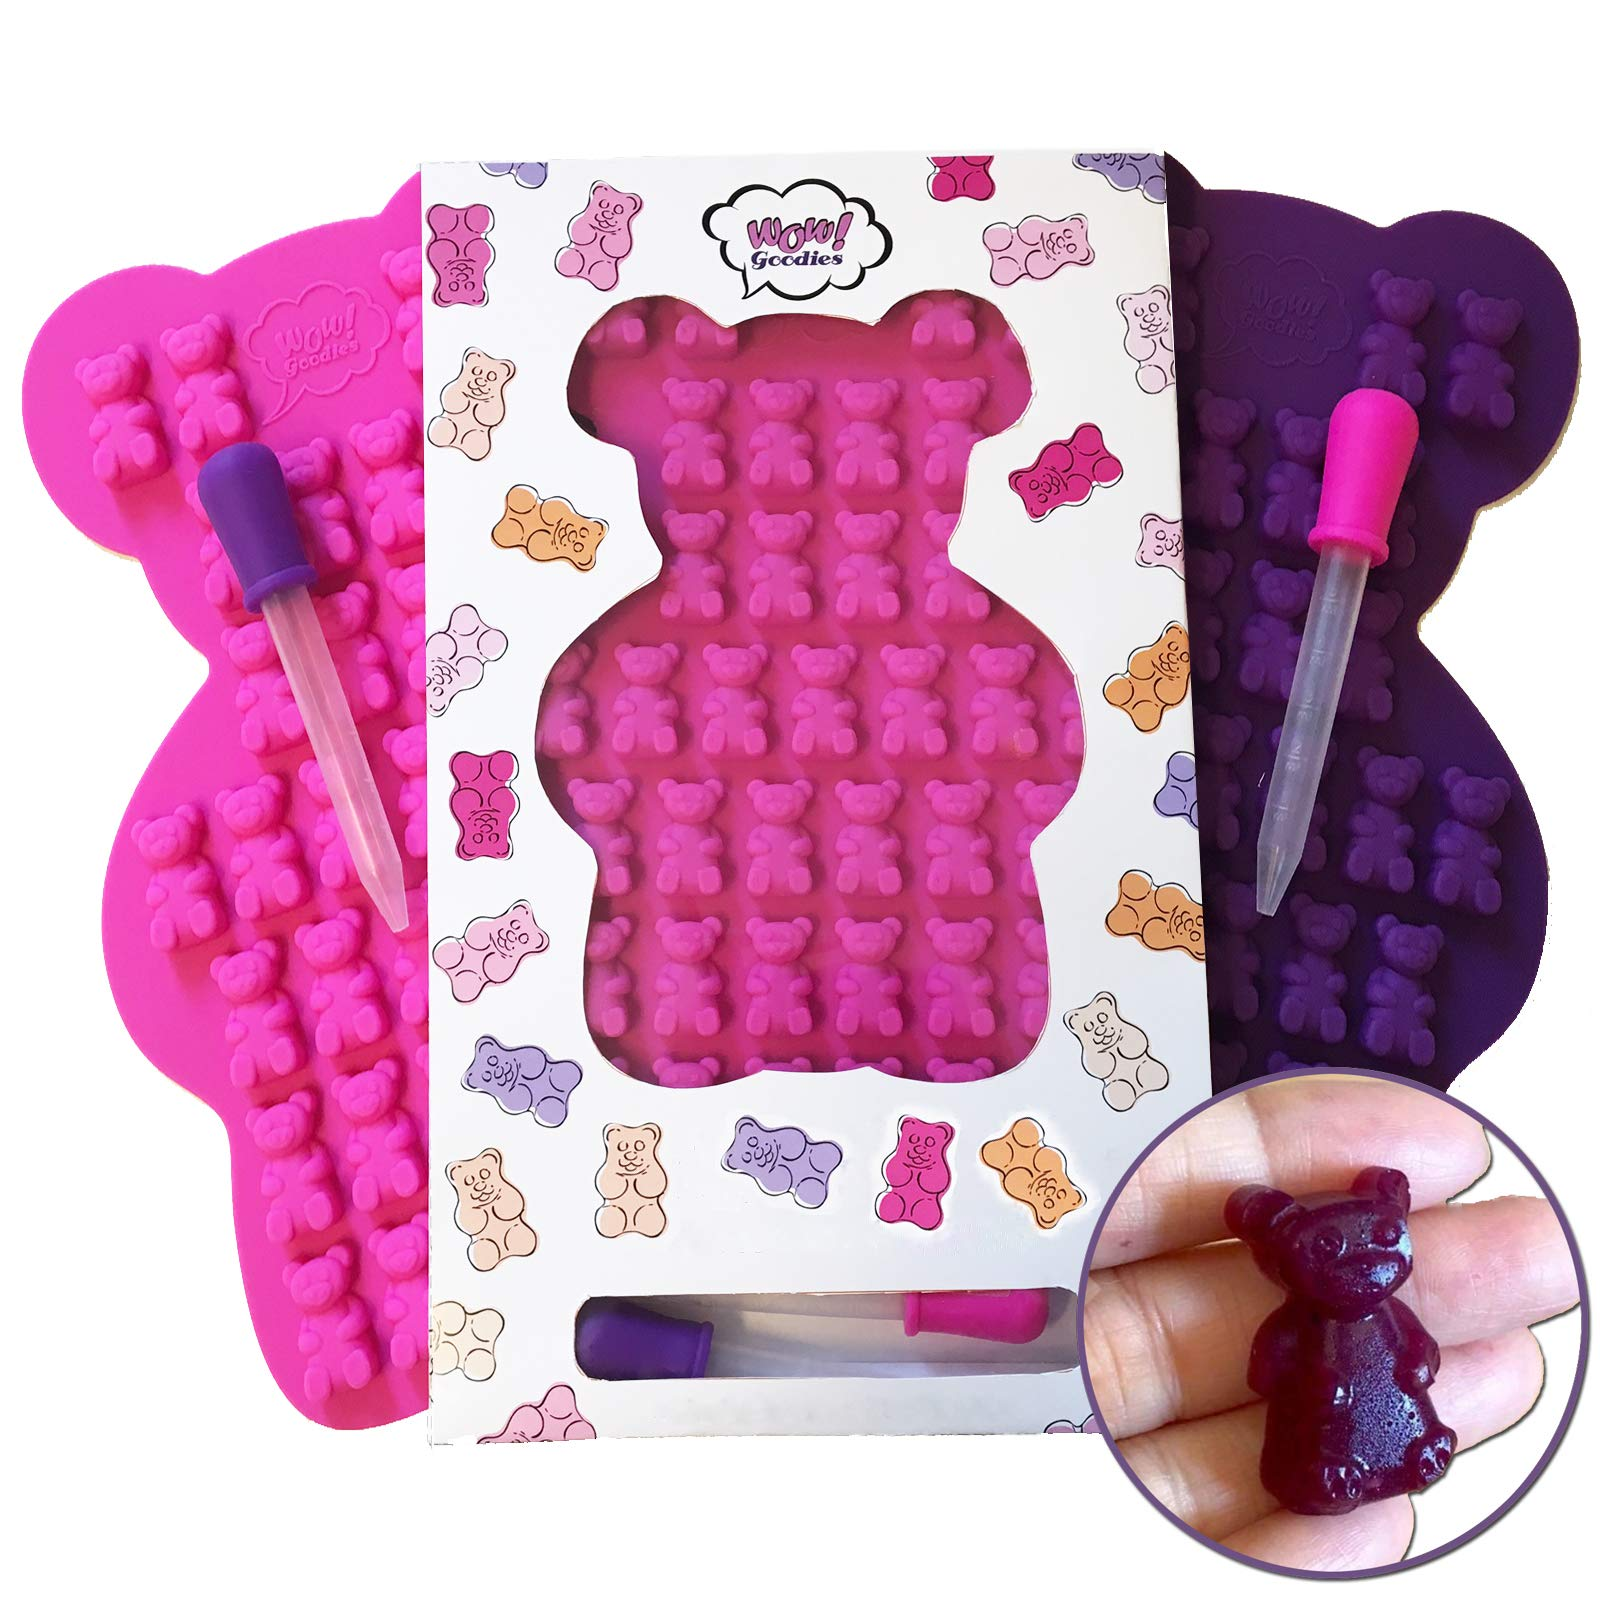 UNIQUE Extra Large Gummy Bear Mold - 2 Big Molds + 2 Bonus Droppers - Durable BPA Free Silicone -''The Bears Popped out Easily, They are so Cute and Have Unique Details That Actually Came Out'' (A.C) by Wow! Goodies